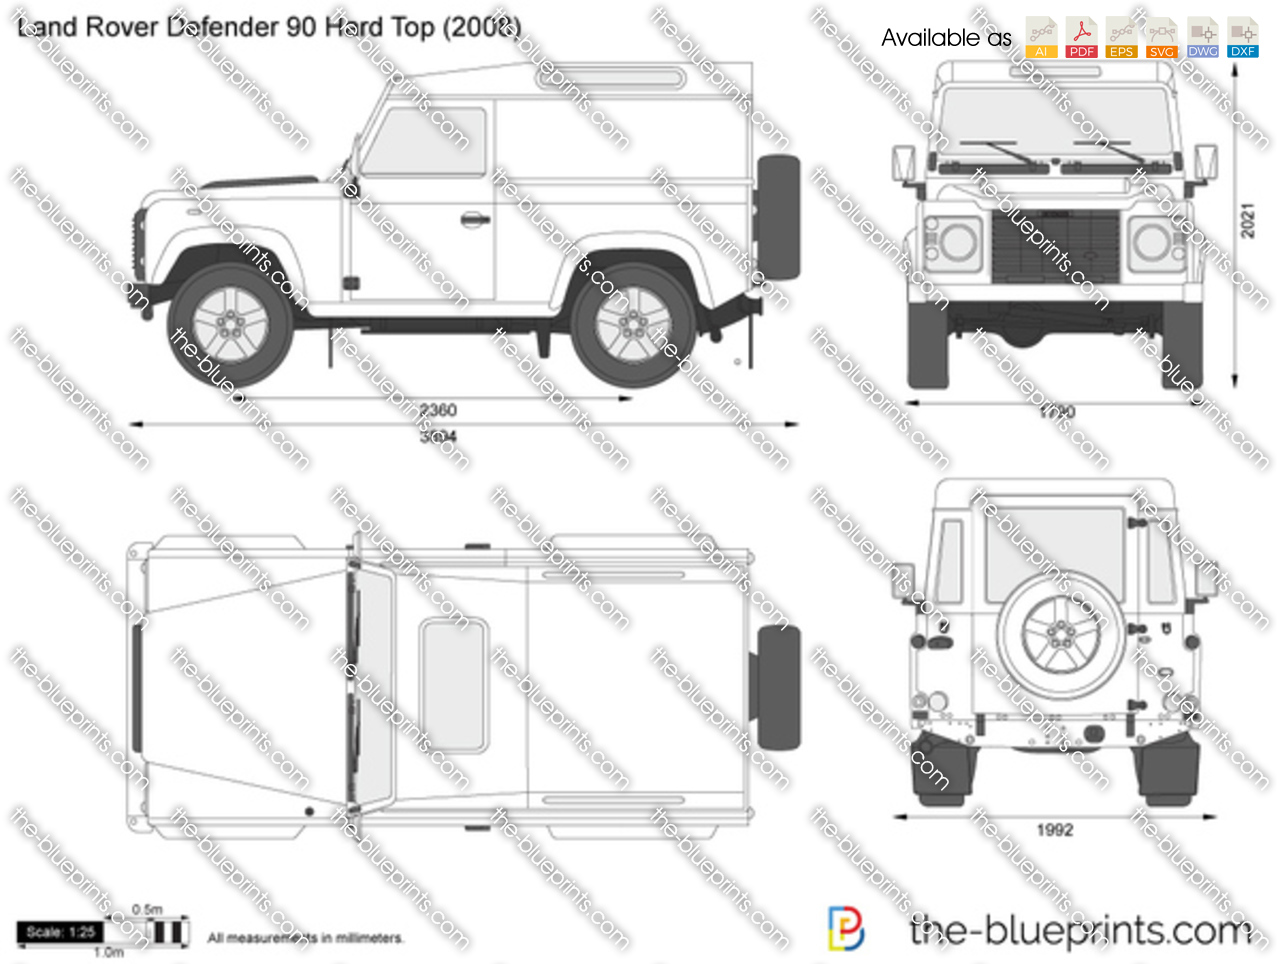 Land Rover Defender 90 Hard Top 2009